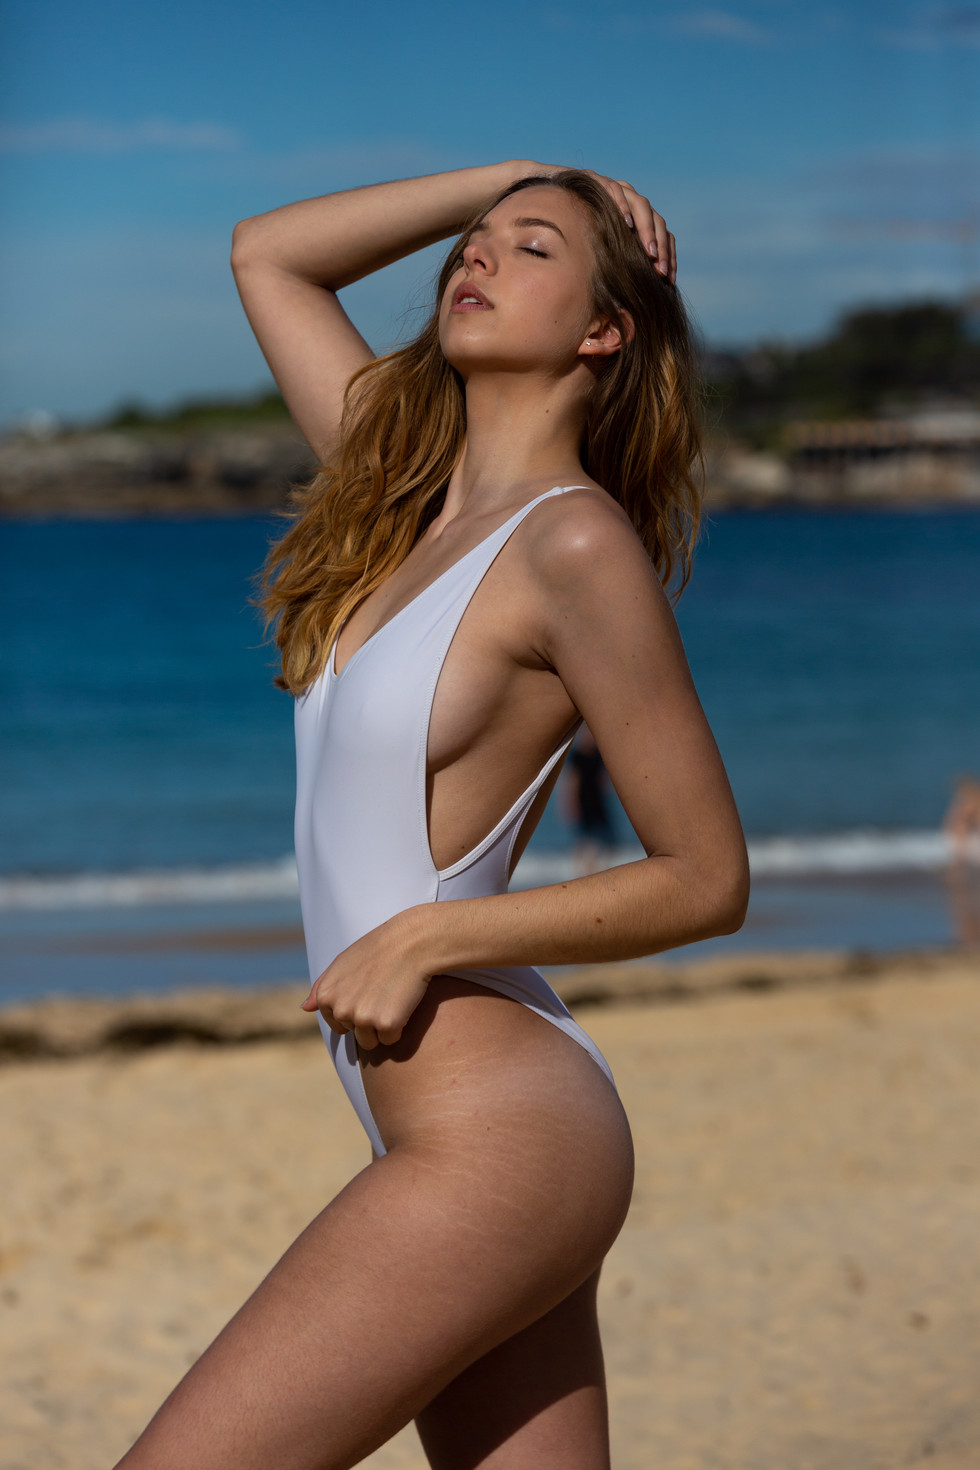 Charlotte_by_CoogeePhotography-1920290.j